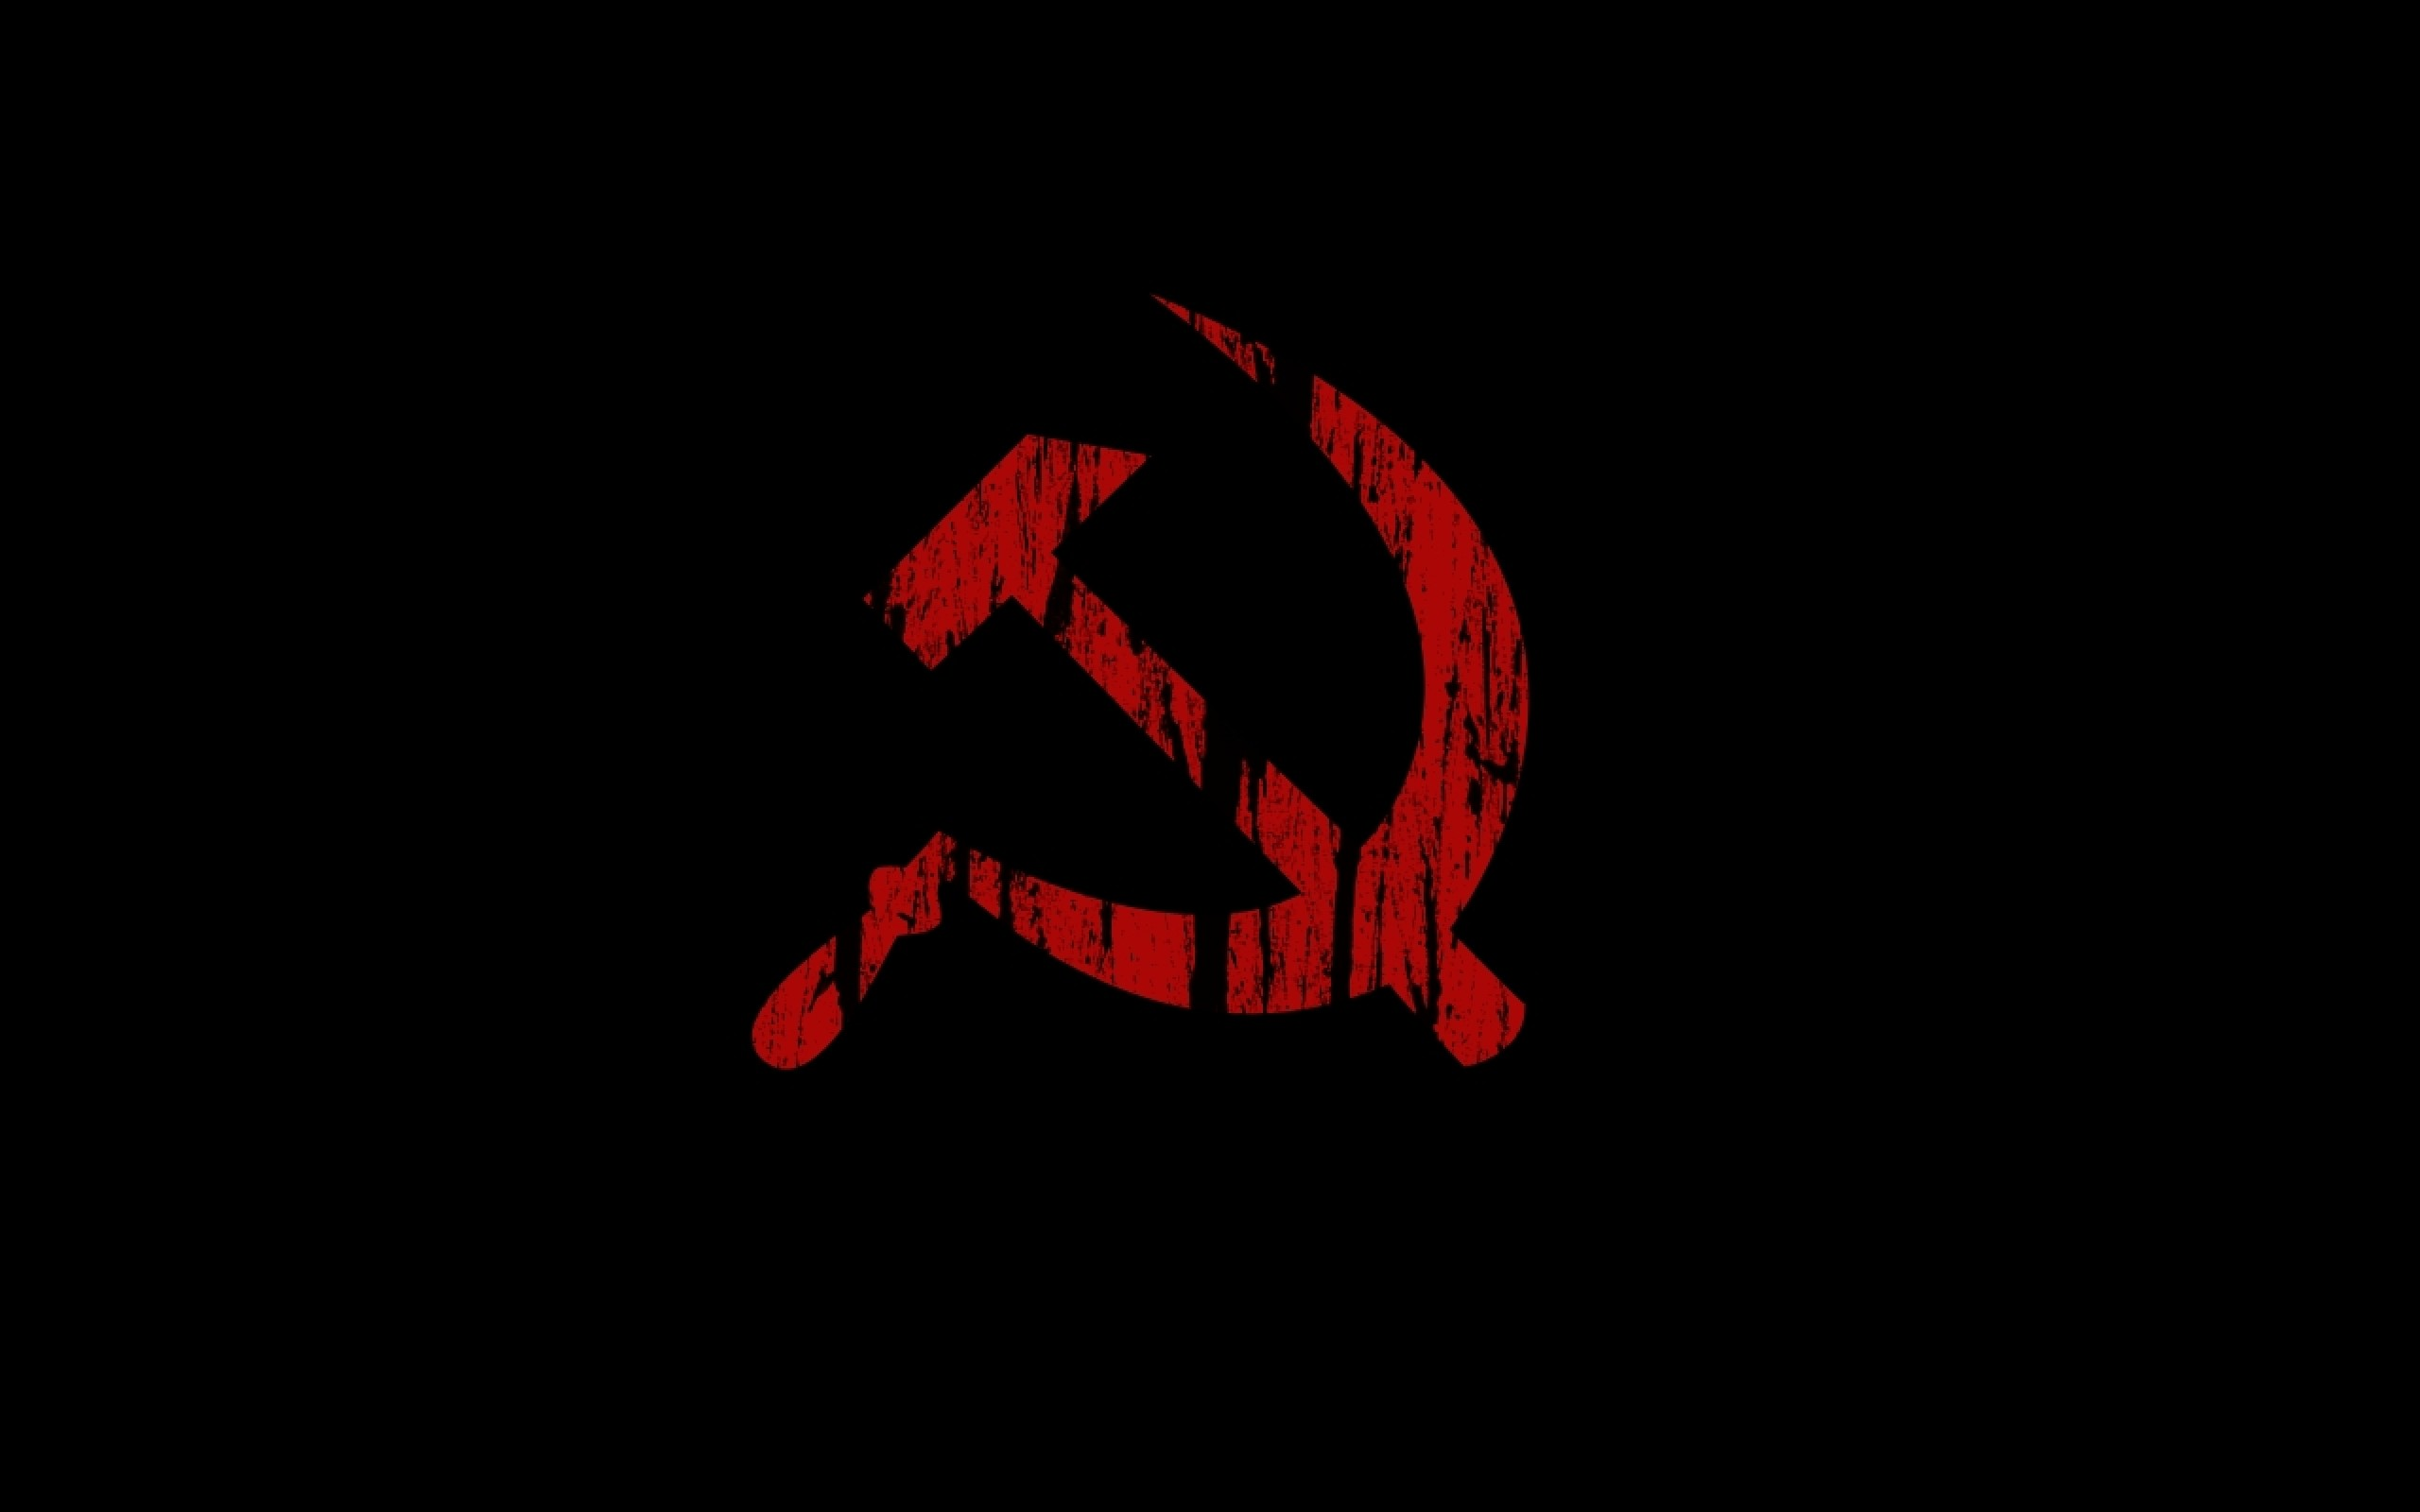 2560x1600 communism hammer and sickle soviet union 1280x800 wallpaper Art HD Wallpaper